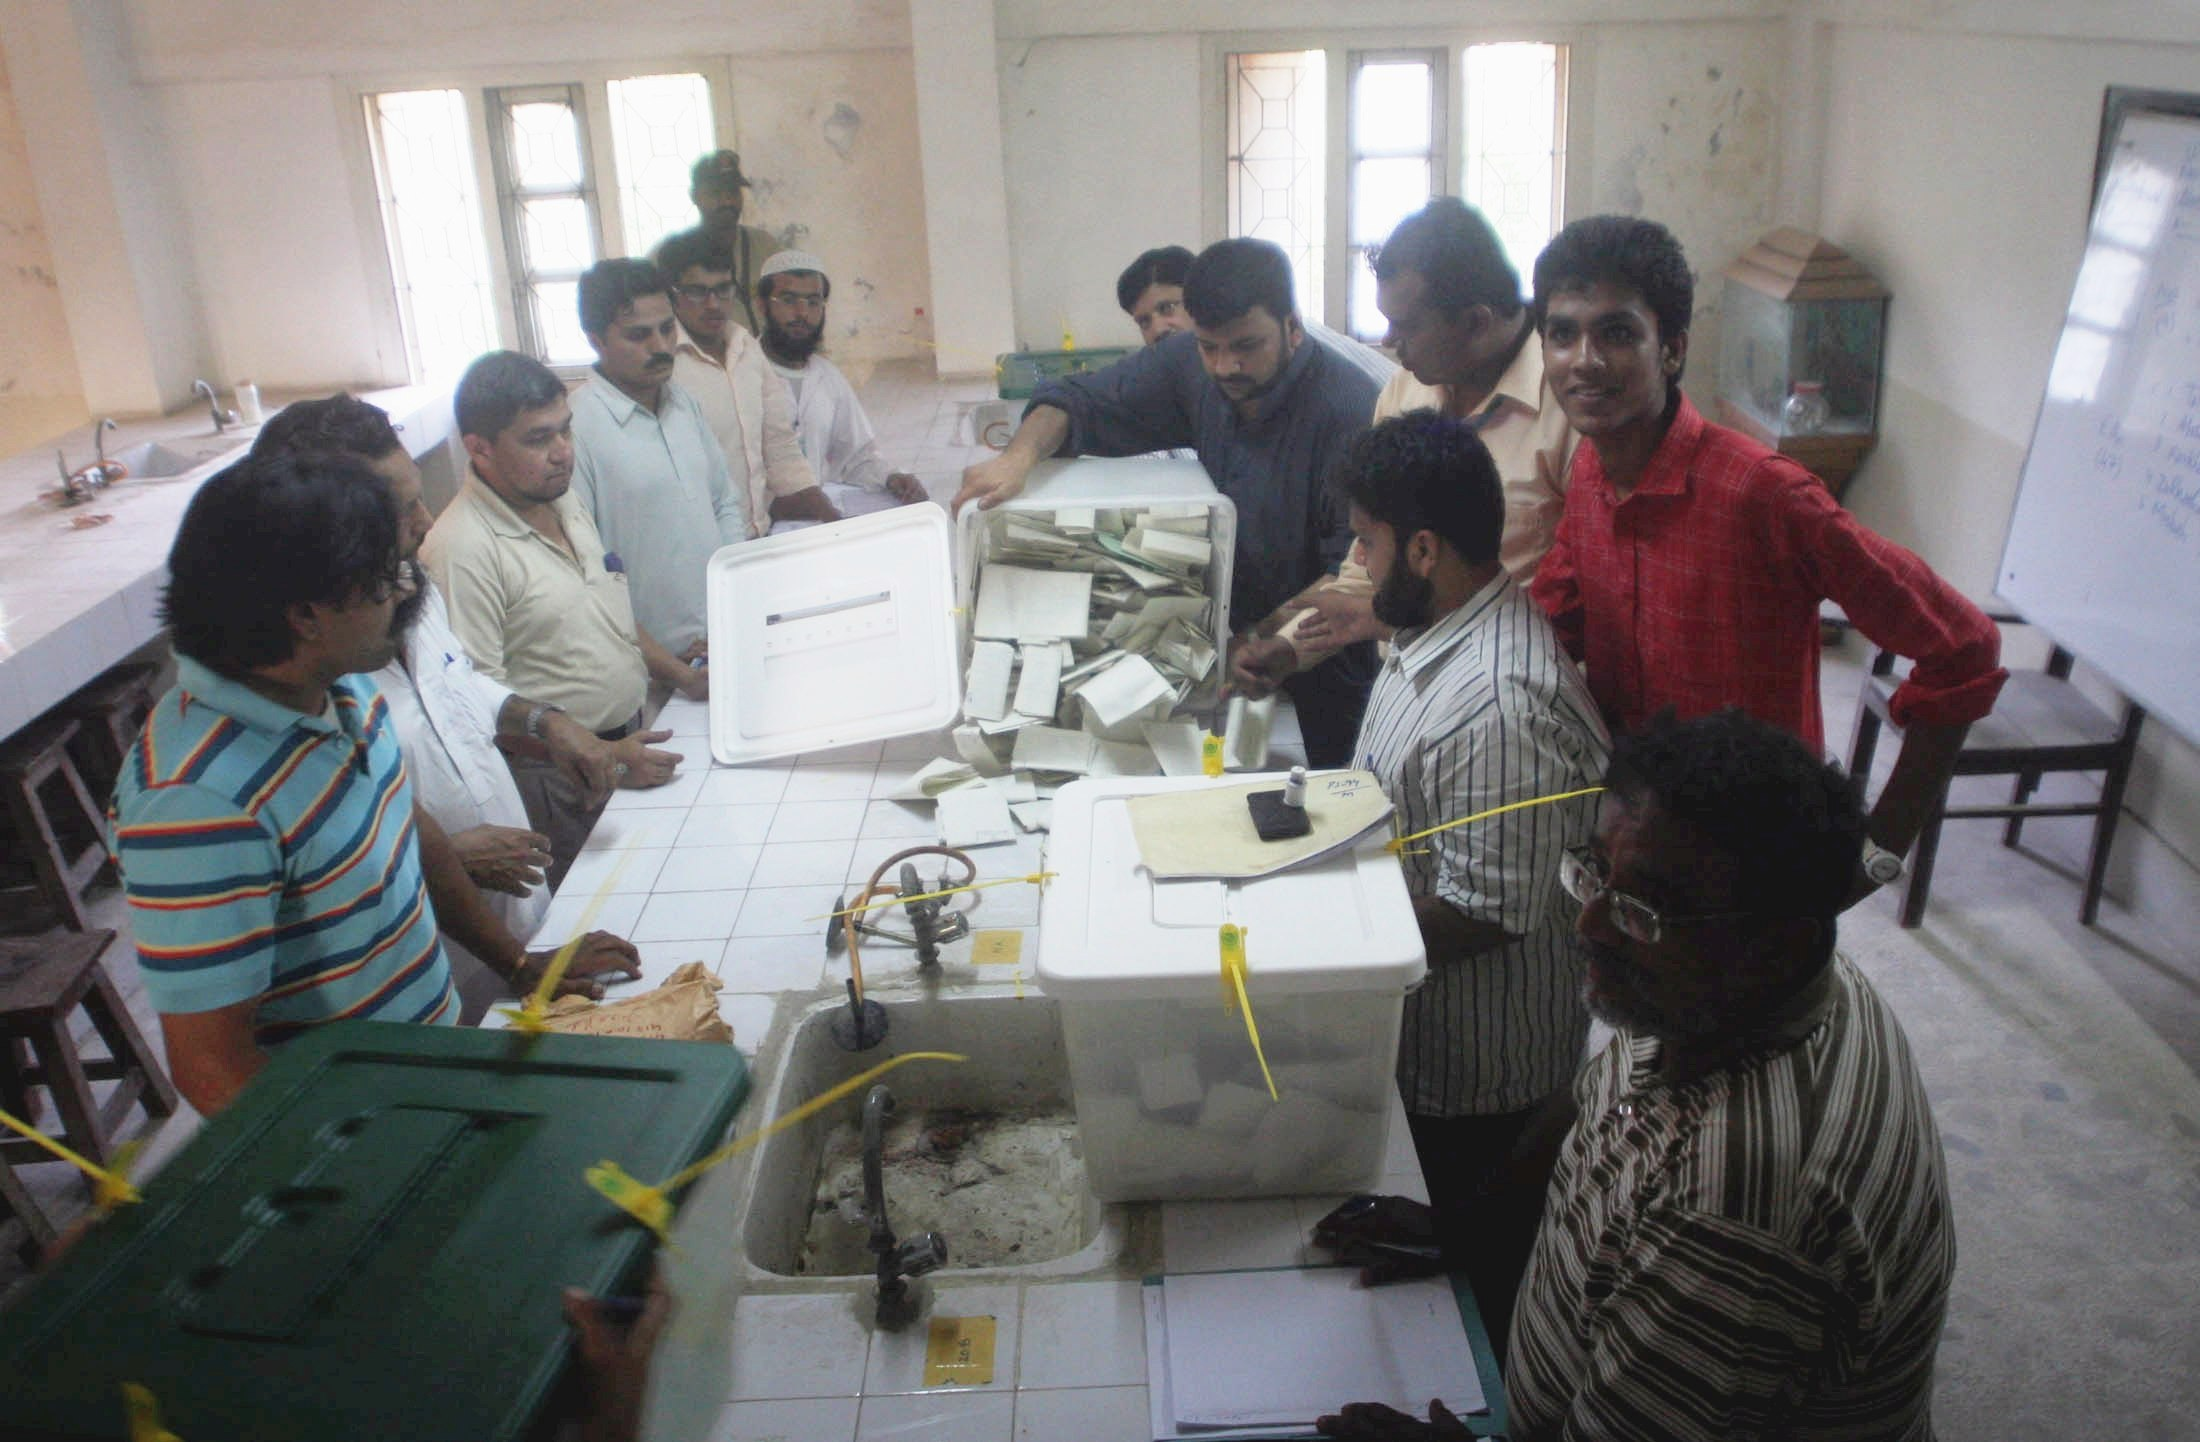 Election officials counting votes in Abdullah Collage after end of the polling time. PHOTO: ATHAR KHAN/ EXPRESS